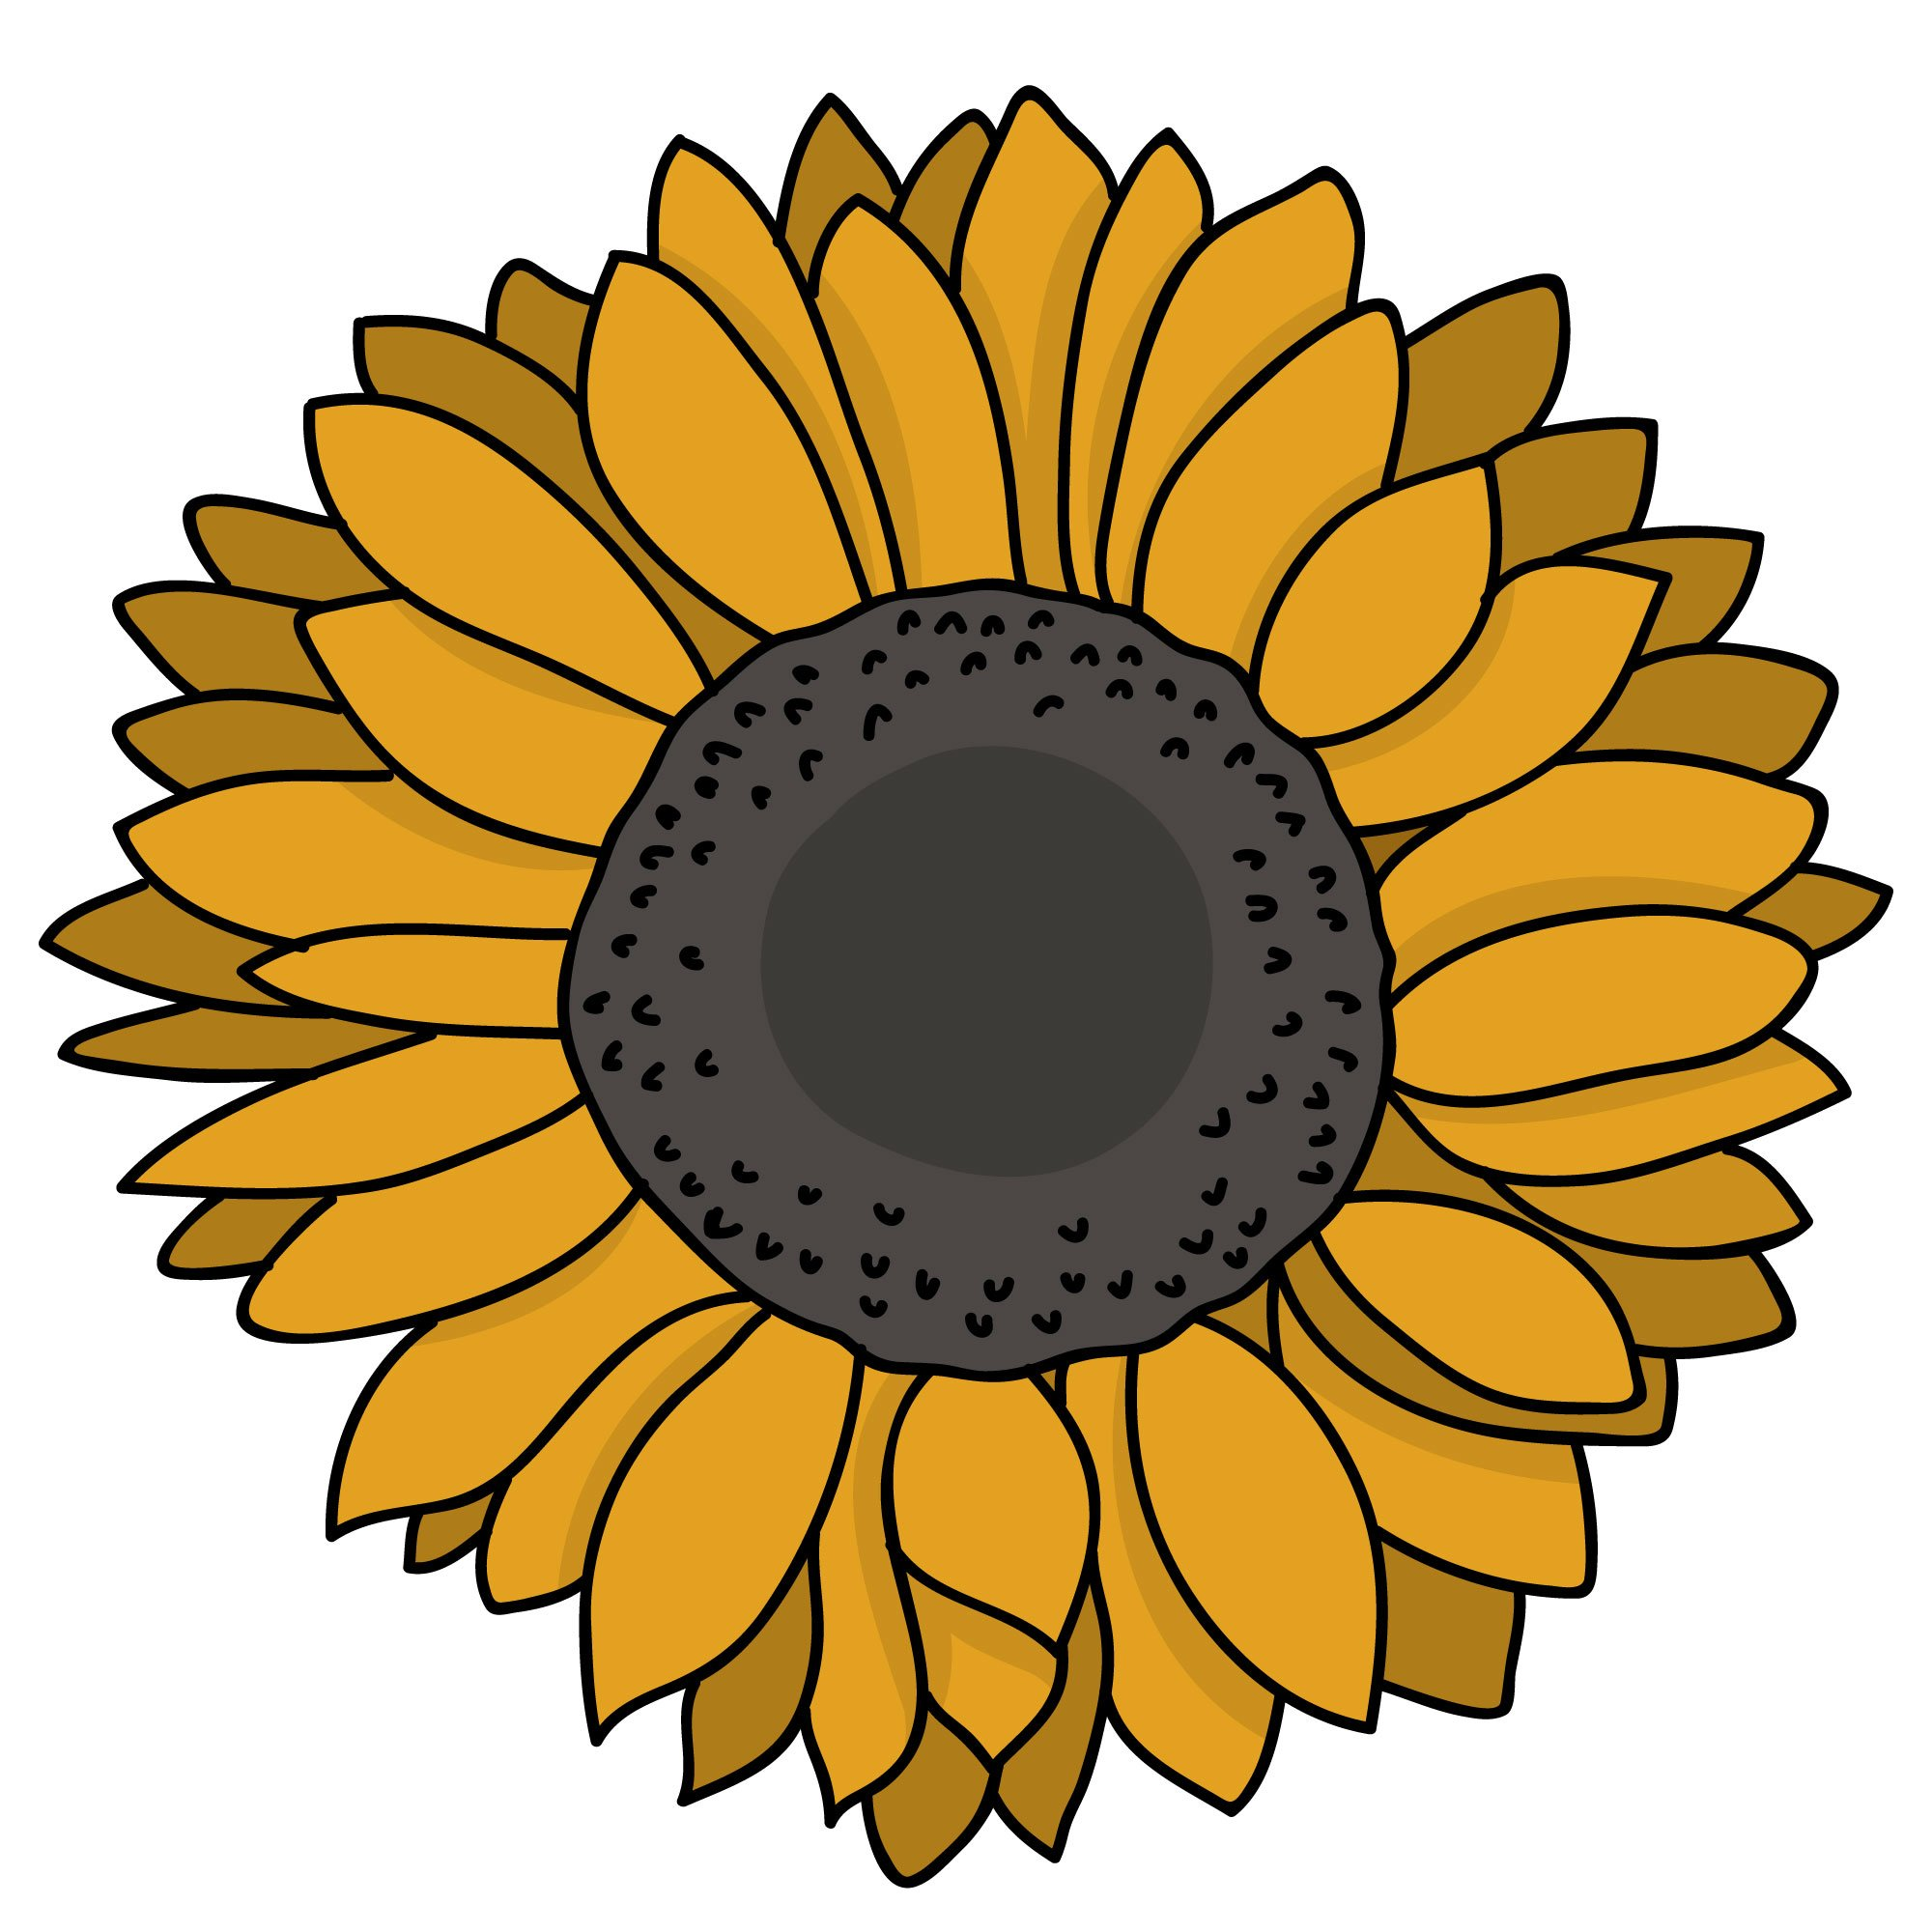 The Sunflower at Home